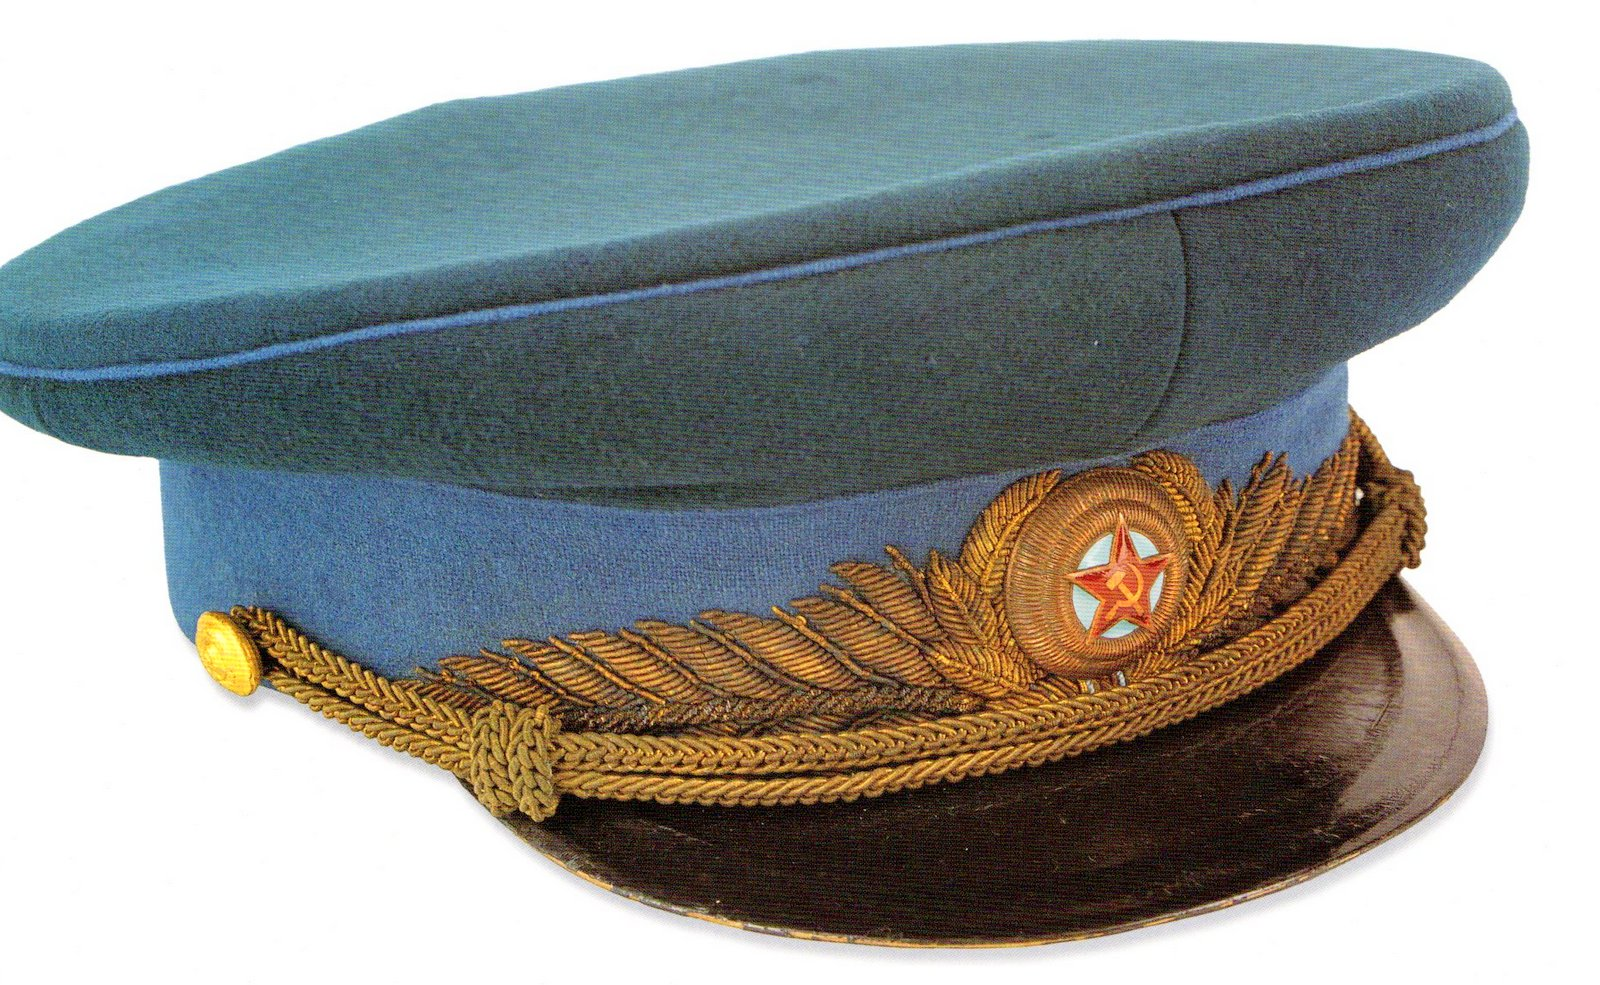 ddb69b64047 Under the Red Star - Air Force Caps